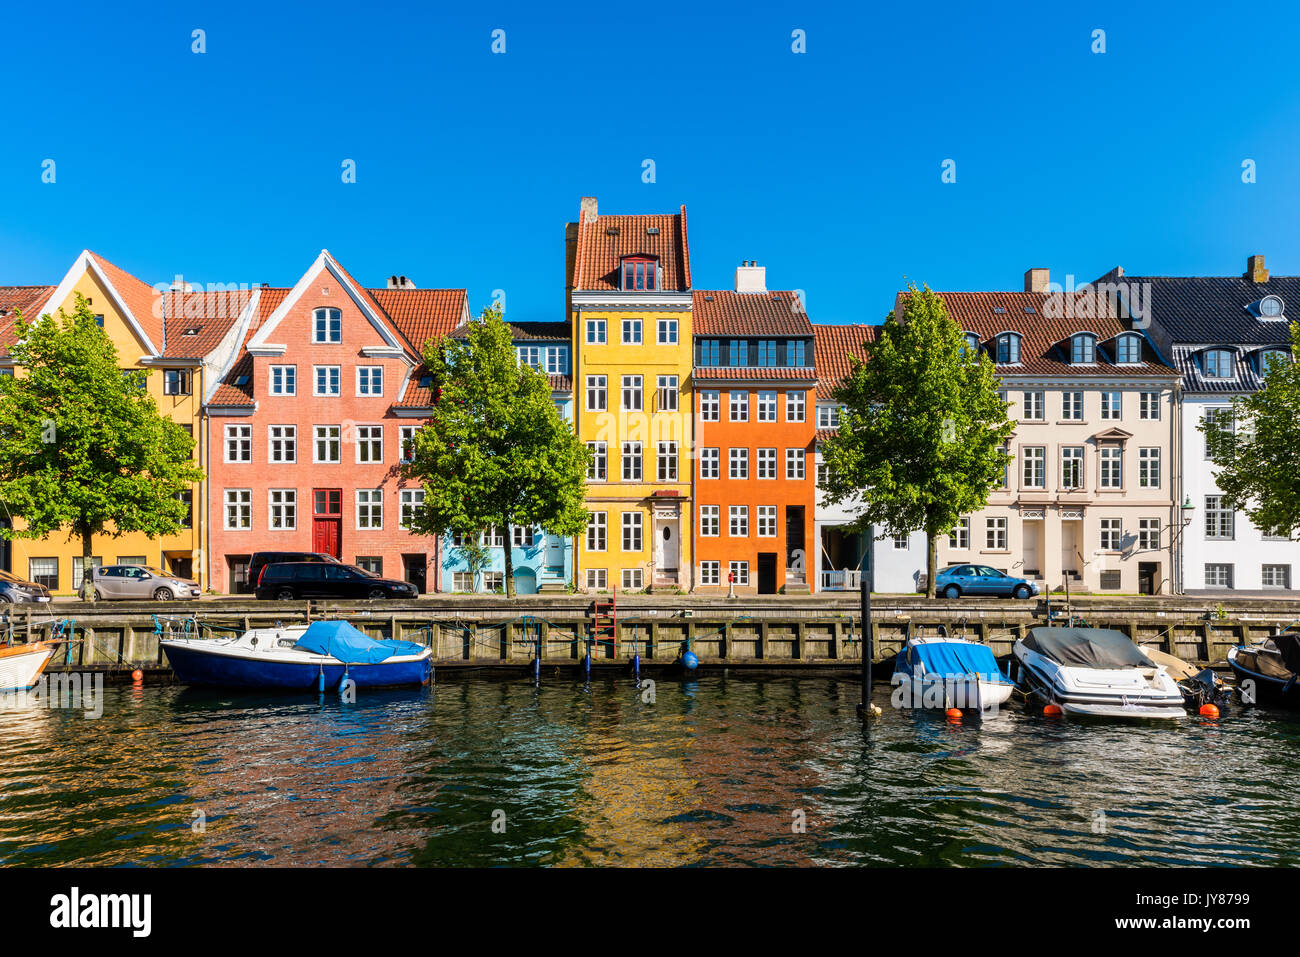 Colourful houses along canal in Copenhagen Denmark - Stock Image